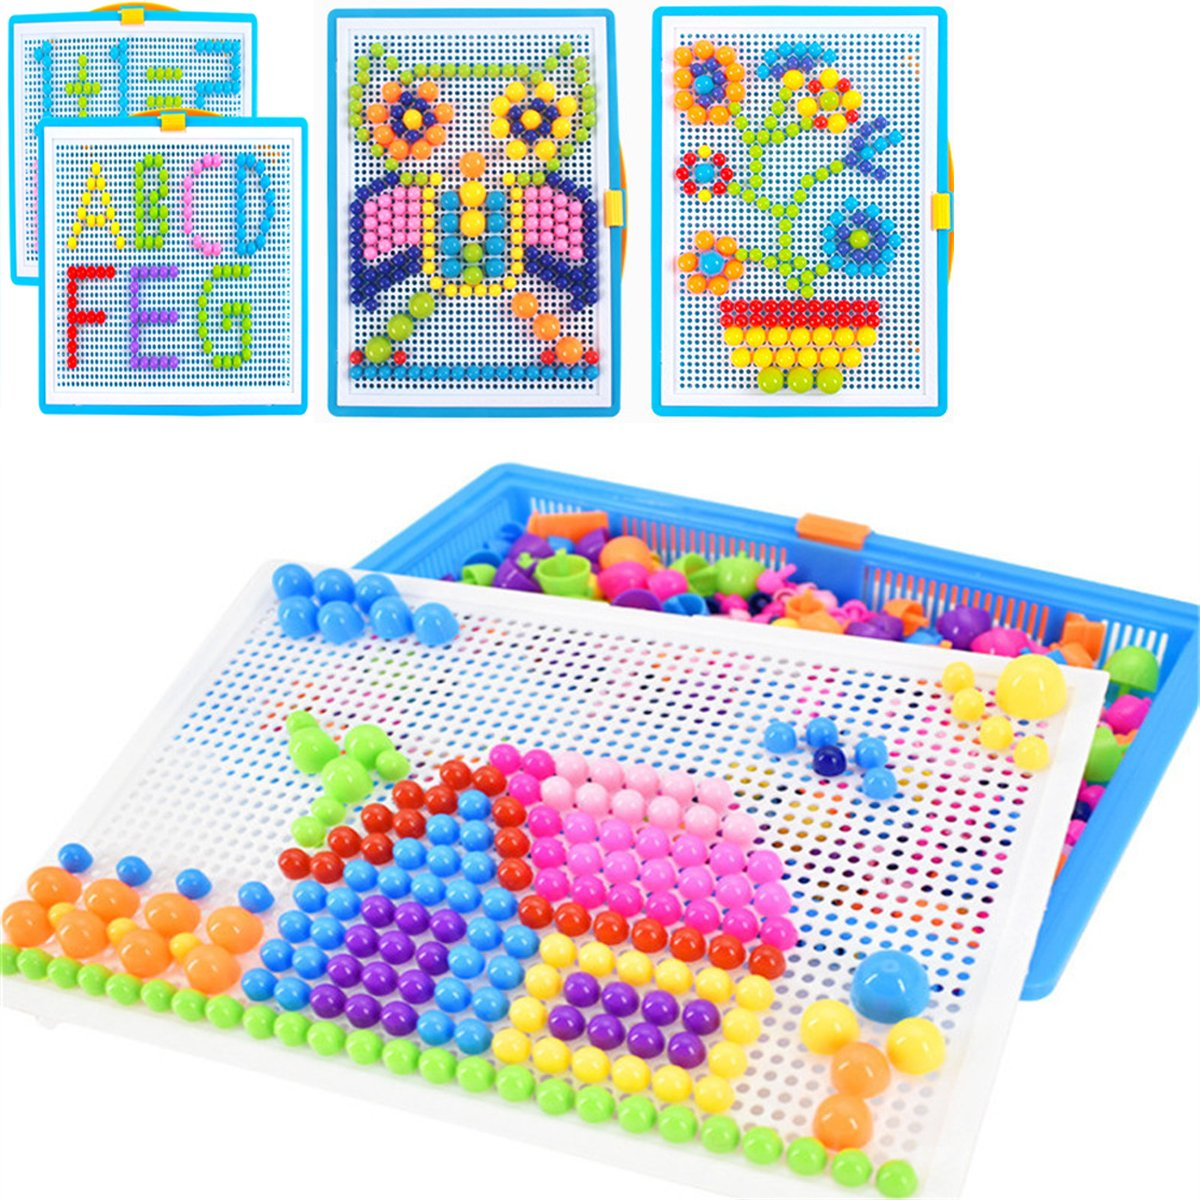 Qchomee Creative Jigsaw Puzzle Board 296 PCS Mushroom Nails Pegboard DIY Assorted Color Mosaic Kit Game Educational Toys Popular Birthday Christmas Toys for Children Girls Boys Age 3-8 years